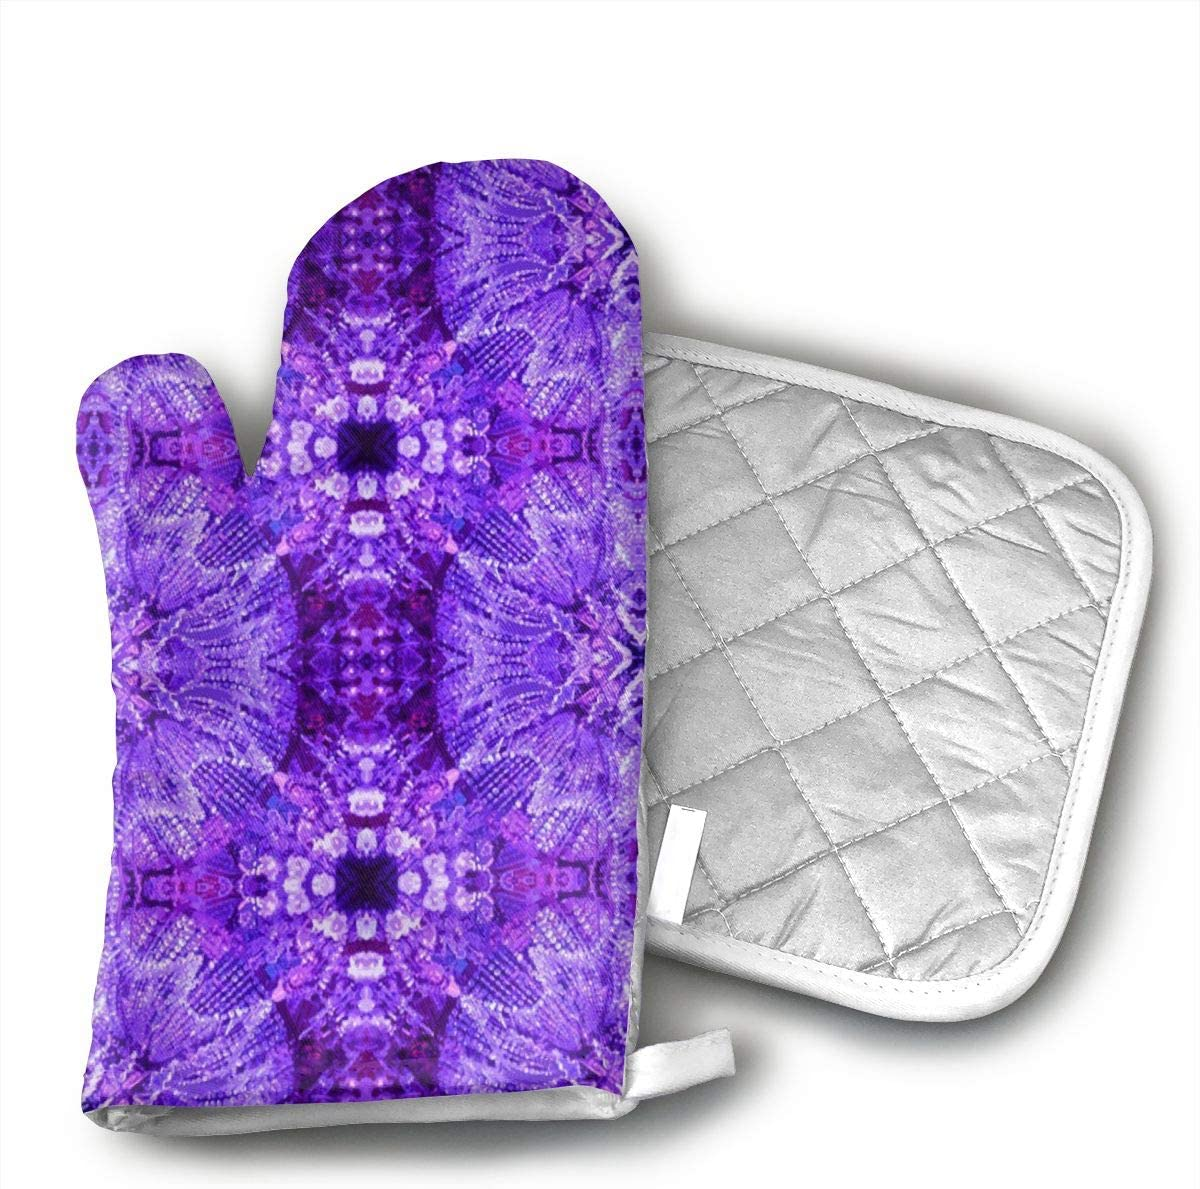 VFSFJKBG Glows in The Dark - Purple Oven Gloves, High Heat Resistance, Machine Washable High Heat Resistant Polyester Filling for Thanks Giving, Christmas